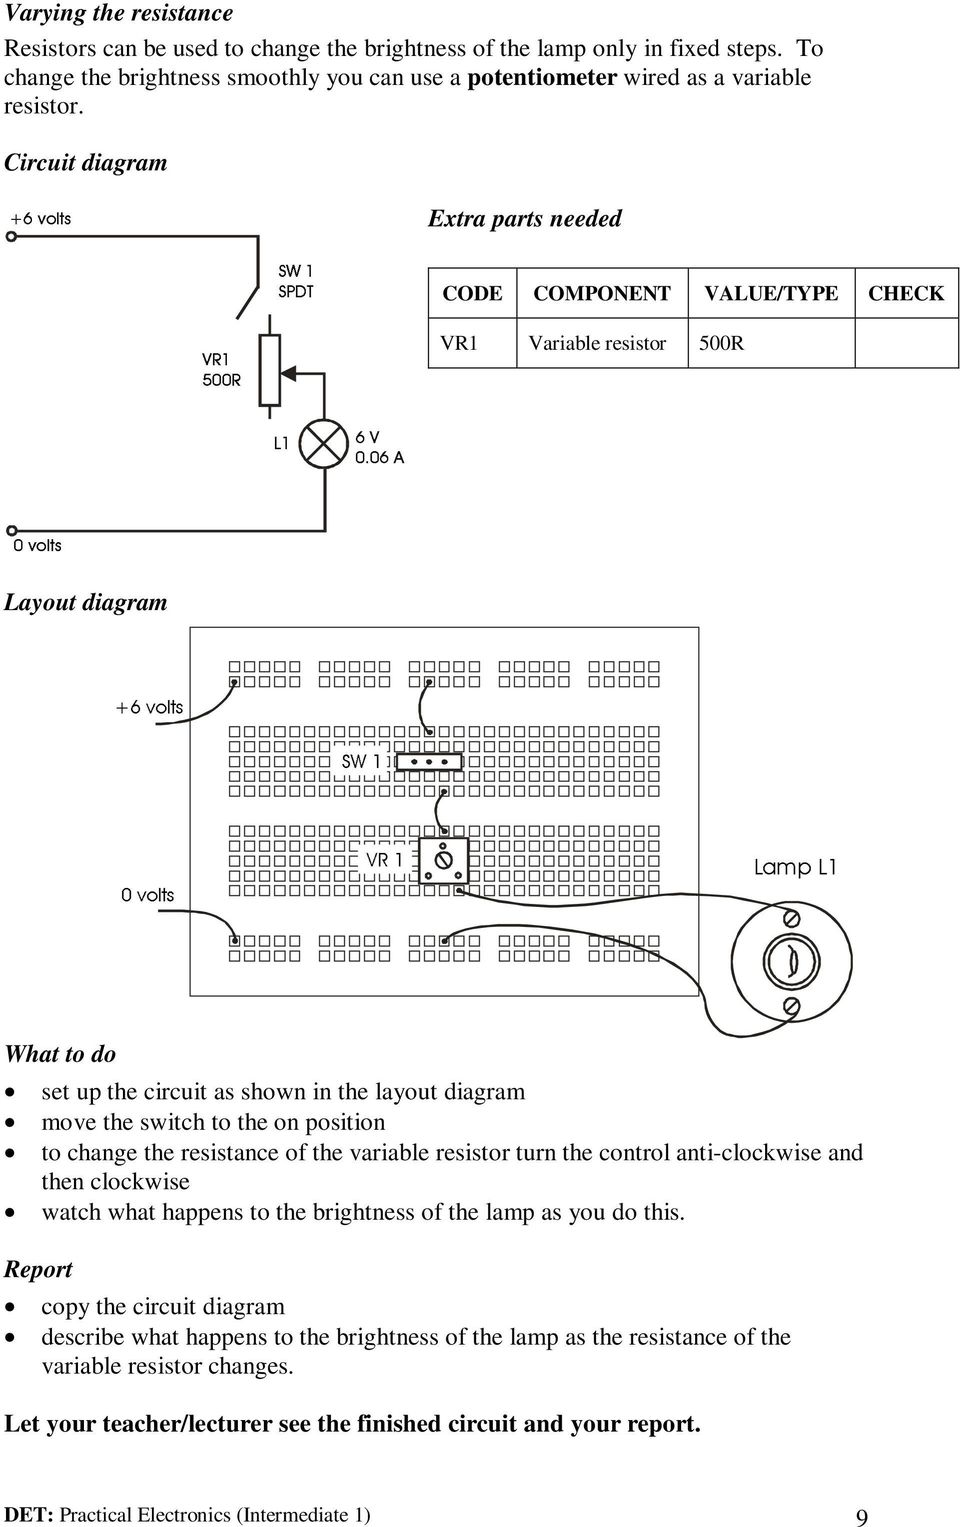 Det Practical Electronics Intermediate 1 Pdf Variable Resistor Diagram Move The Switch To On Position Change Resistance Of Turn